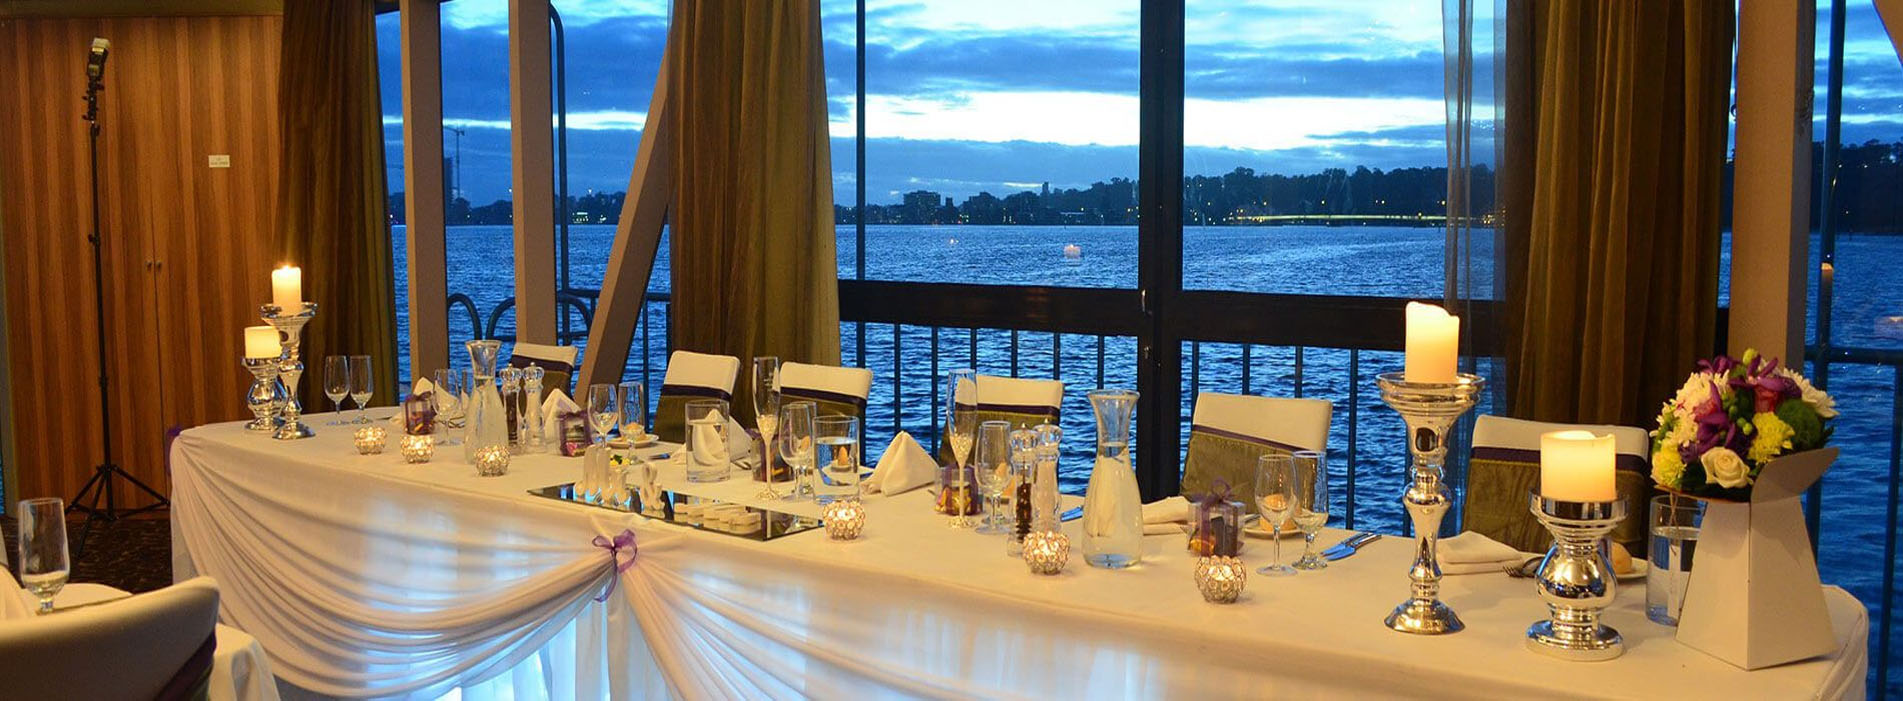 CRYSTAL SWAN wedding river charter venue s